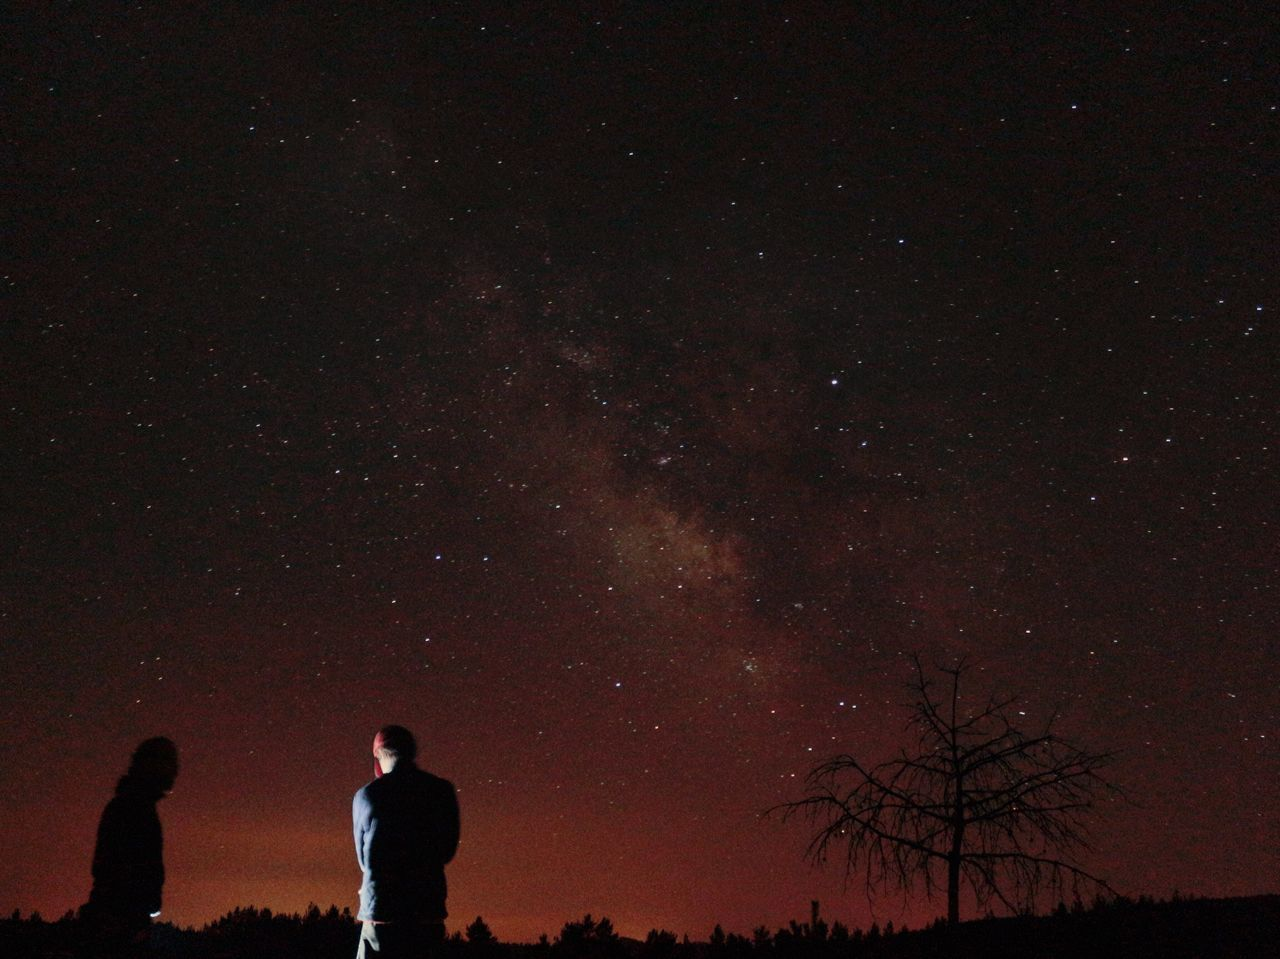 EyeEm Selects EyeEmNewHere Night Star - Space Astronomy Silhouette Real People Sky One Person Outdoors Galaxy Beauty In Nature Scenics Space Tree Nature One Man Only People